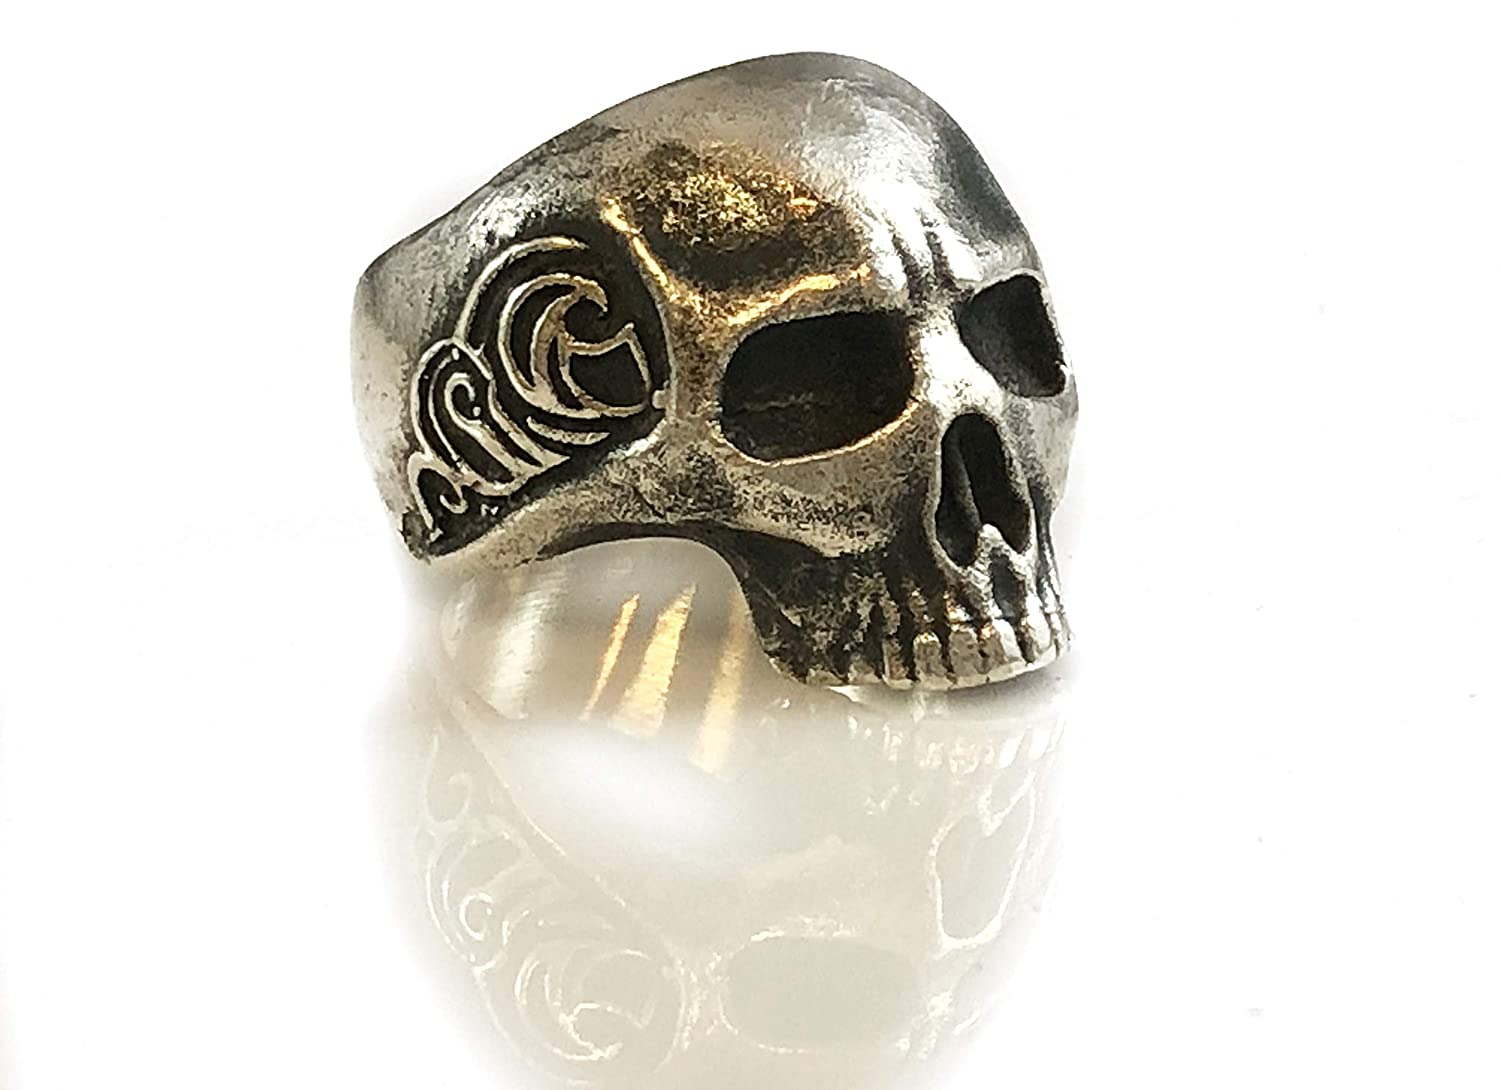 Handmade Waves Skull Sterling Silver Ring - DeluxeAdultCostumes.com